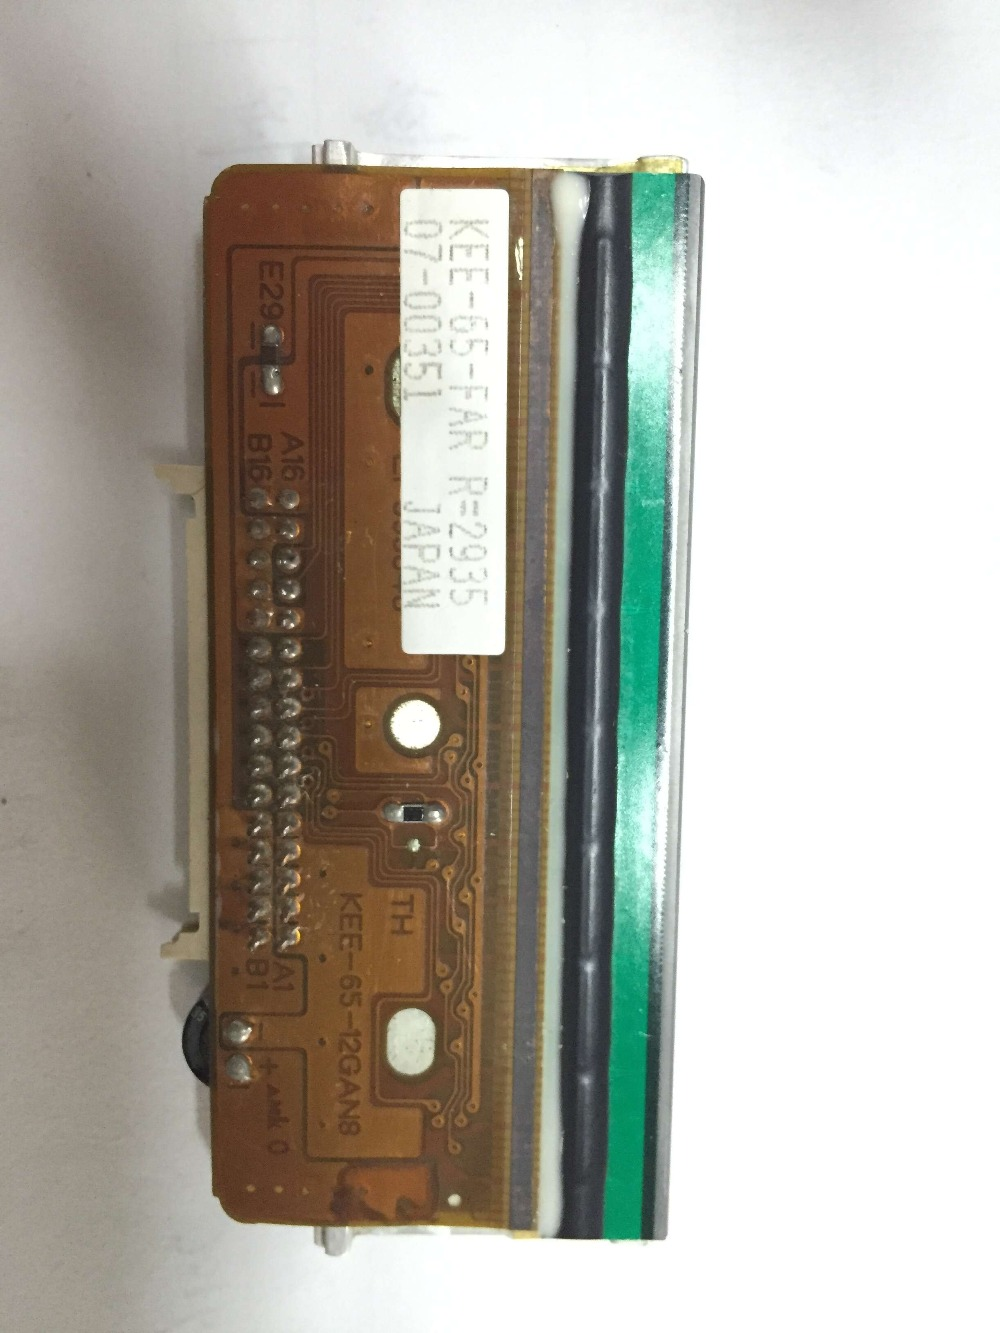 Original For Fargo Printhead for DTC550 DT500 printer 86002,print head,printing accessories,printer part Without stand kicx dtc 36